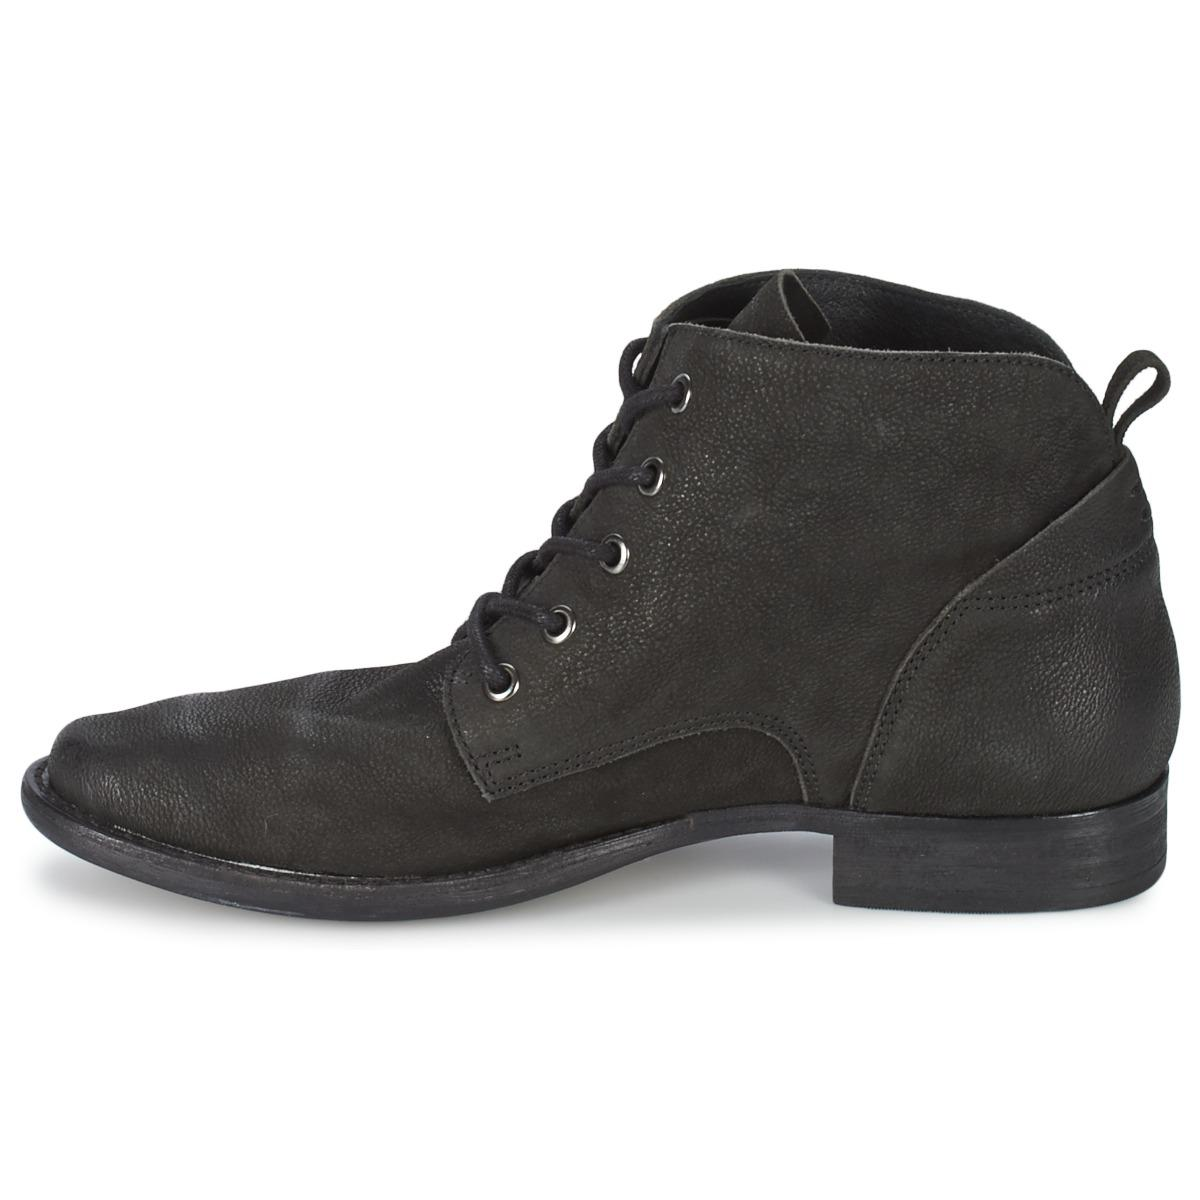 Sam Edelman Leather Mare Women's Low Ankle Boots In Black